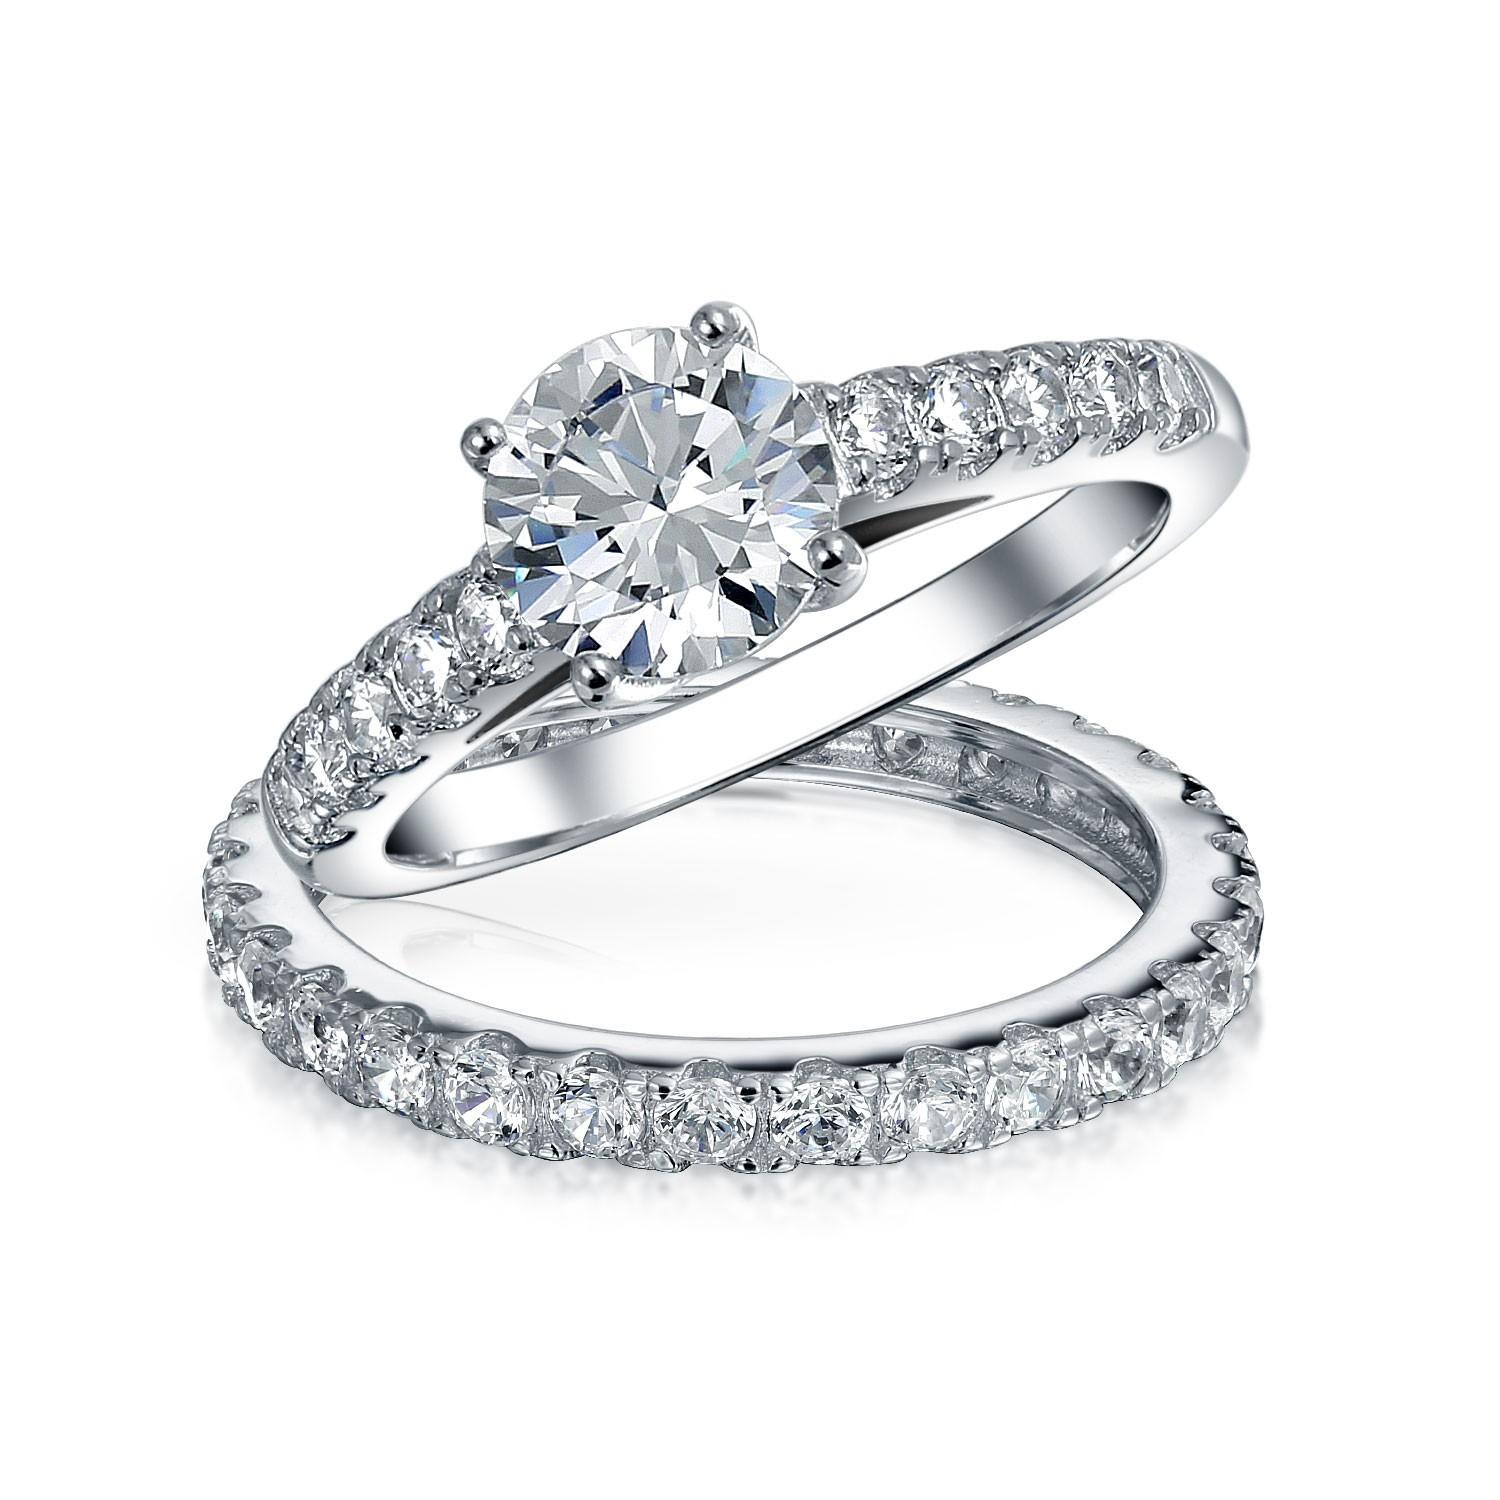 silver wedding rings bling jewelry bridal cz solitaire engagement wedding ring set wjevggy